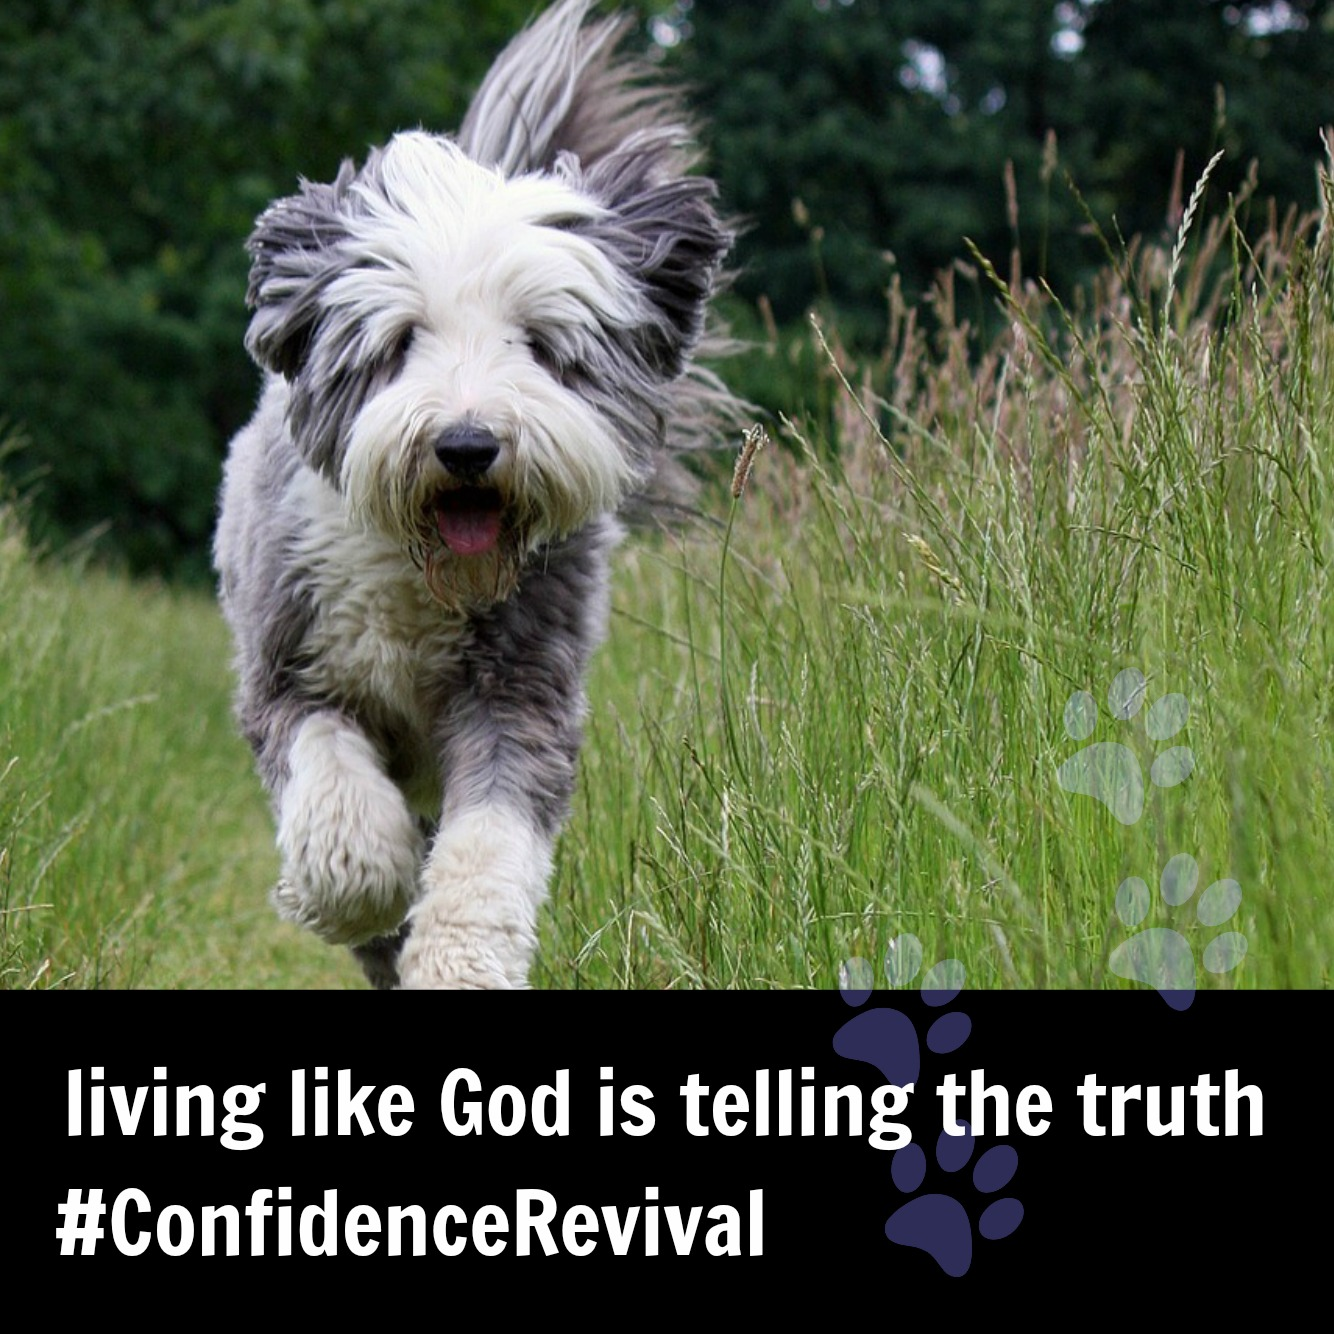 live like God is telling the truth